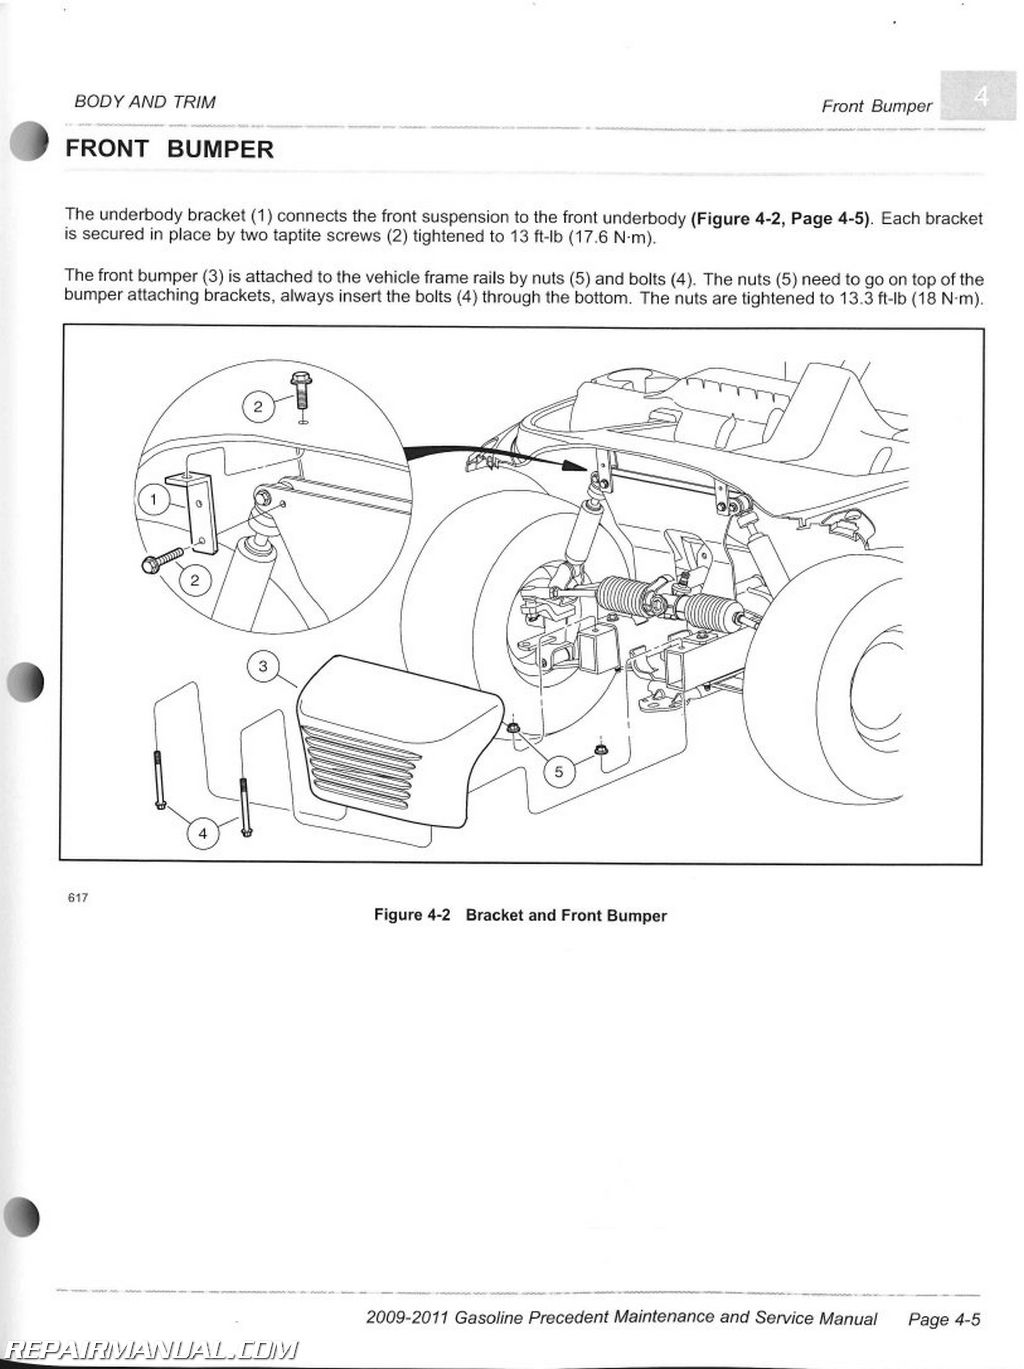 Club Car Gasoline Precedent Maintenance And Service Manual Page on club car front suspension parts diagram